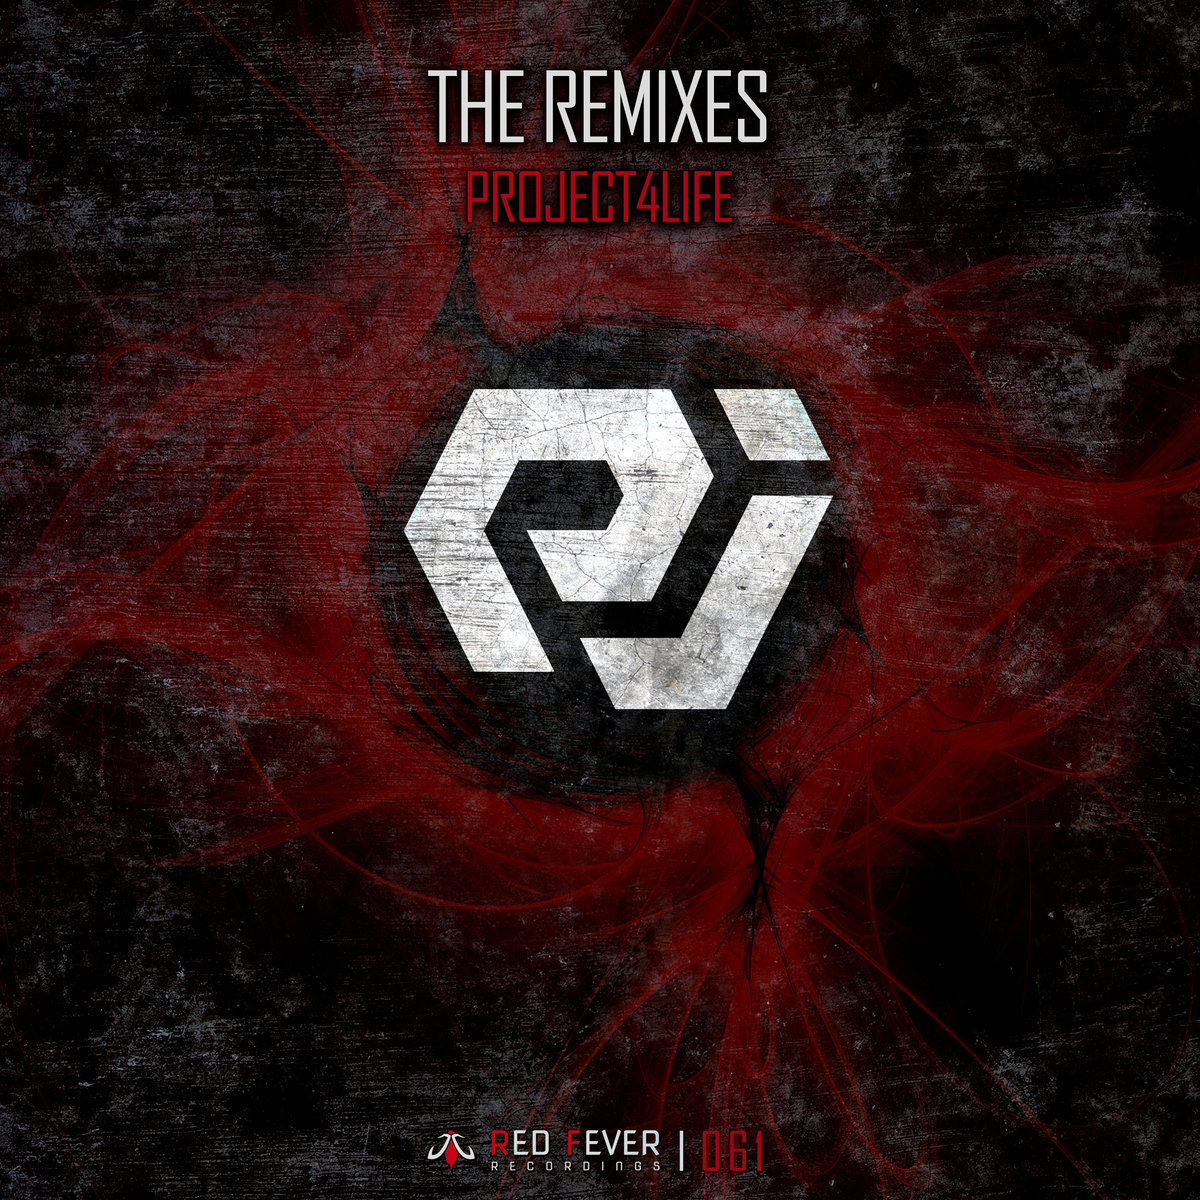 Project4life - Dark Secret (Scorpion Hoplite Remix) @ 'The Remixes' album (electronic, gabber)